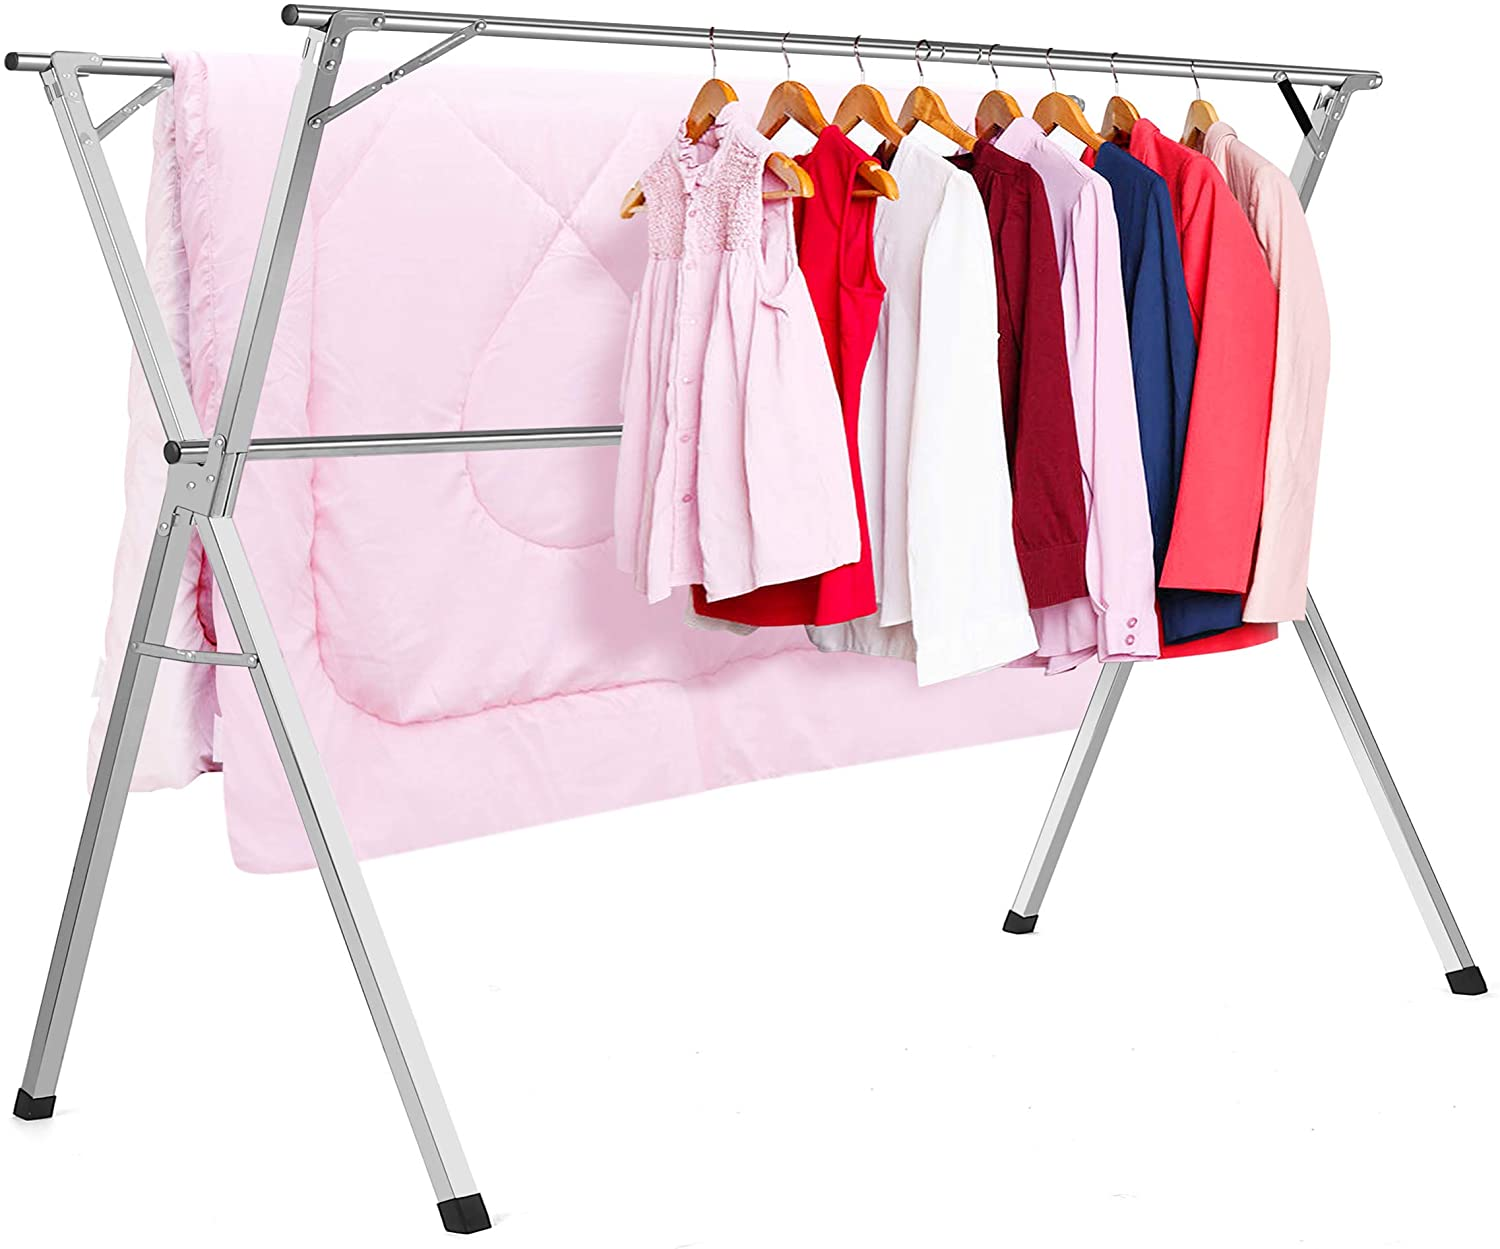 clothes drying racks stainless steel laundry drying rack heavy duty collapsible folding garment rack